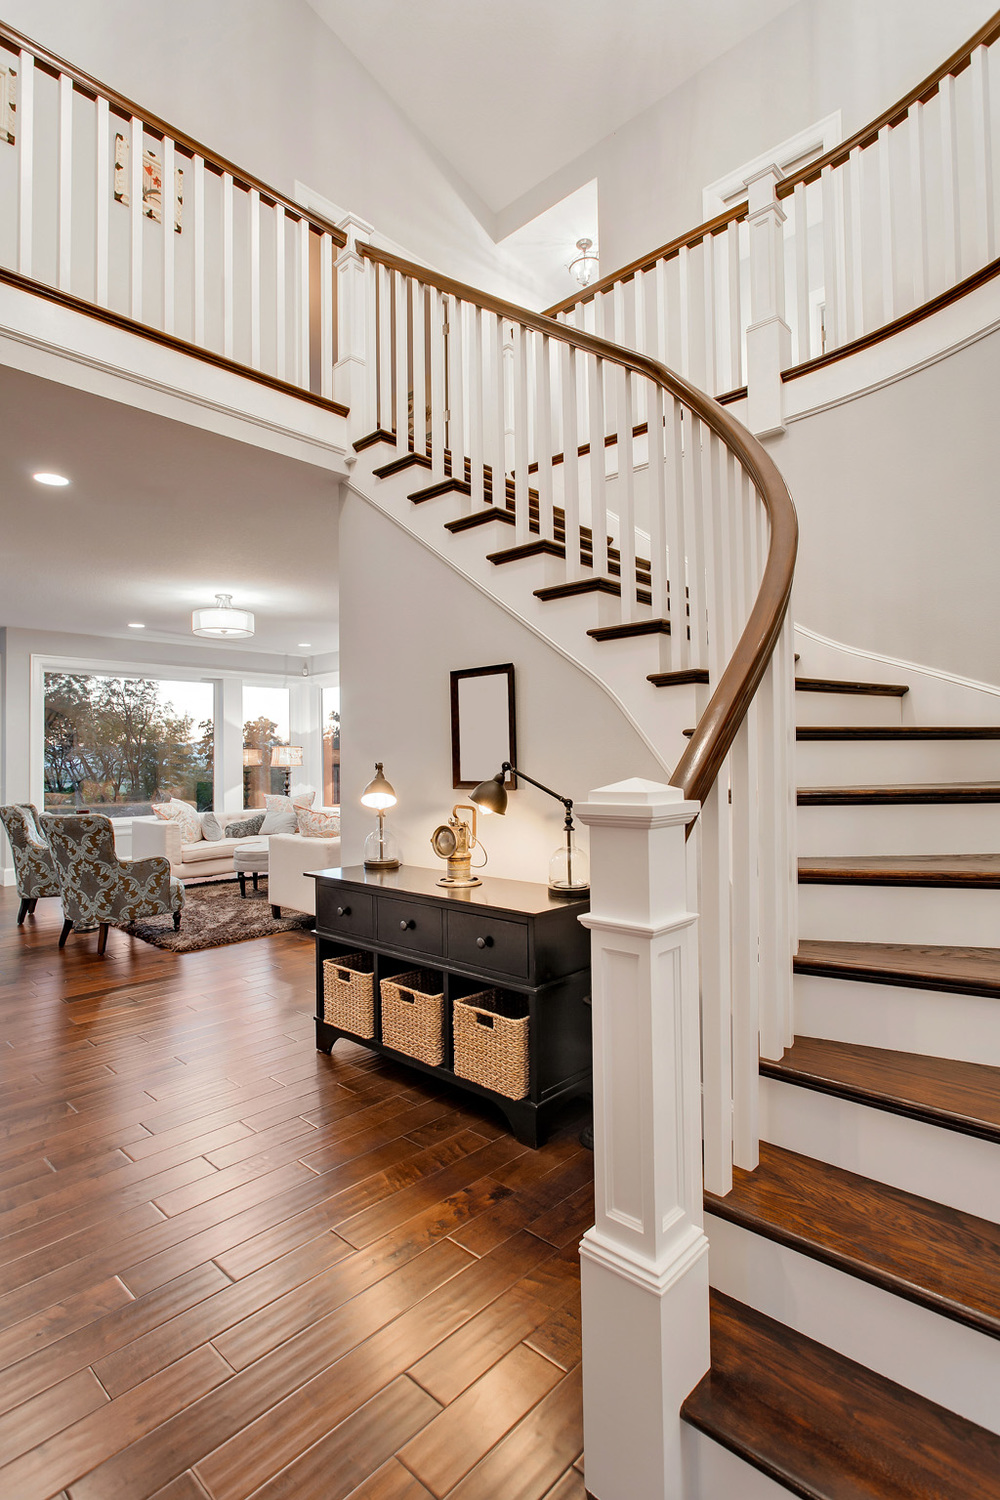 Primed 5060 Balusters, 6210 Bending Rail Bring And Custom Box Newels Lend  Beautiful Lines To